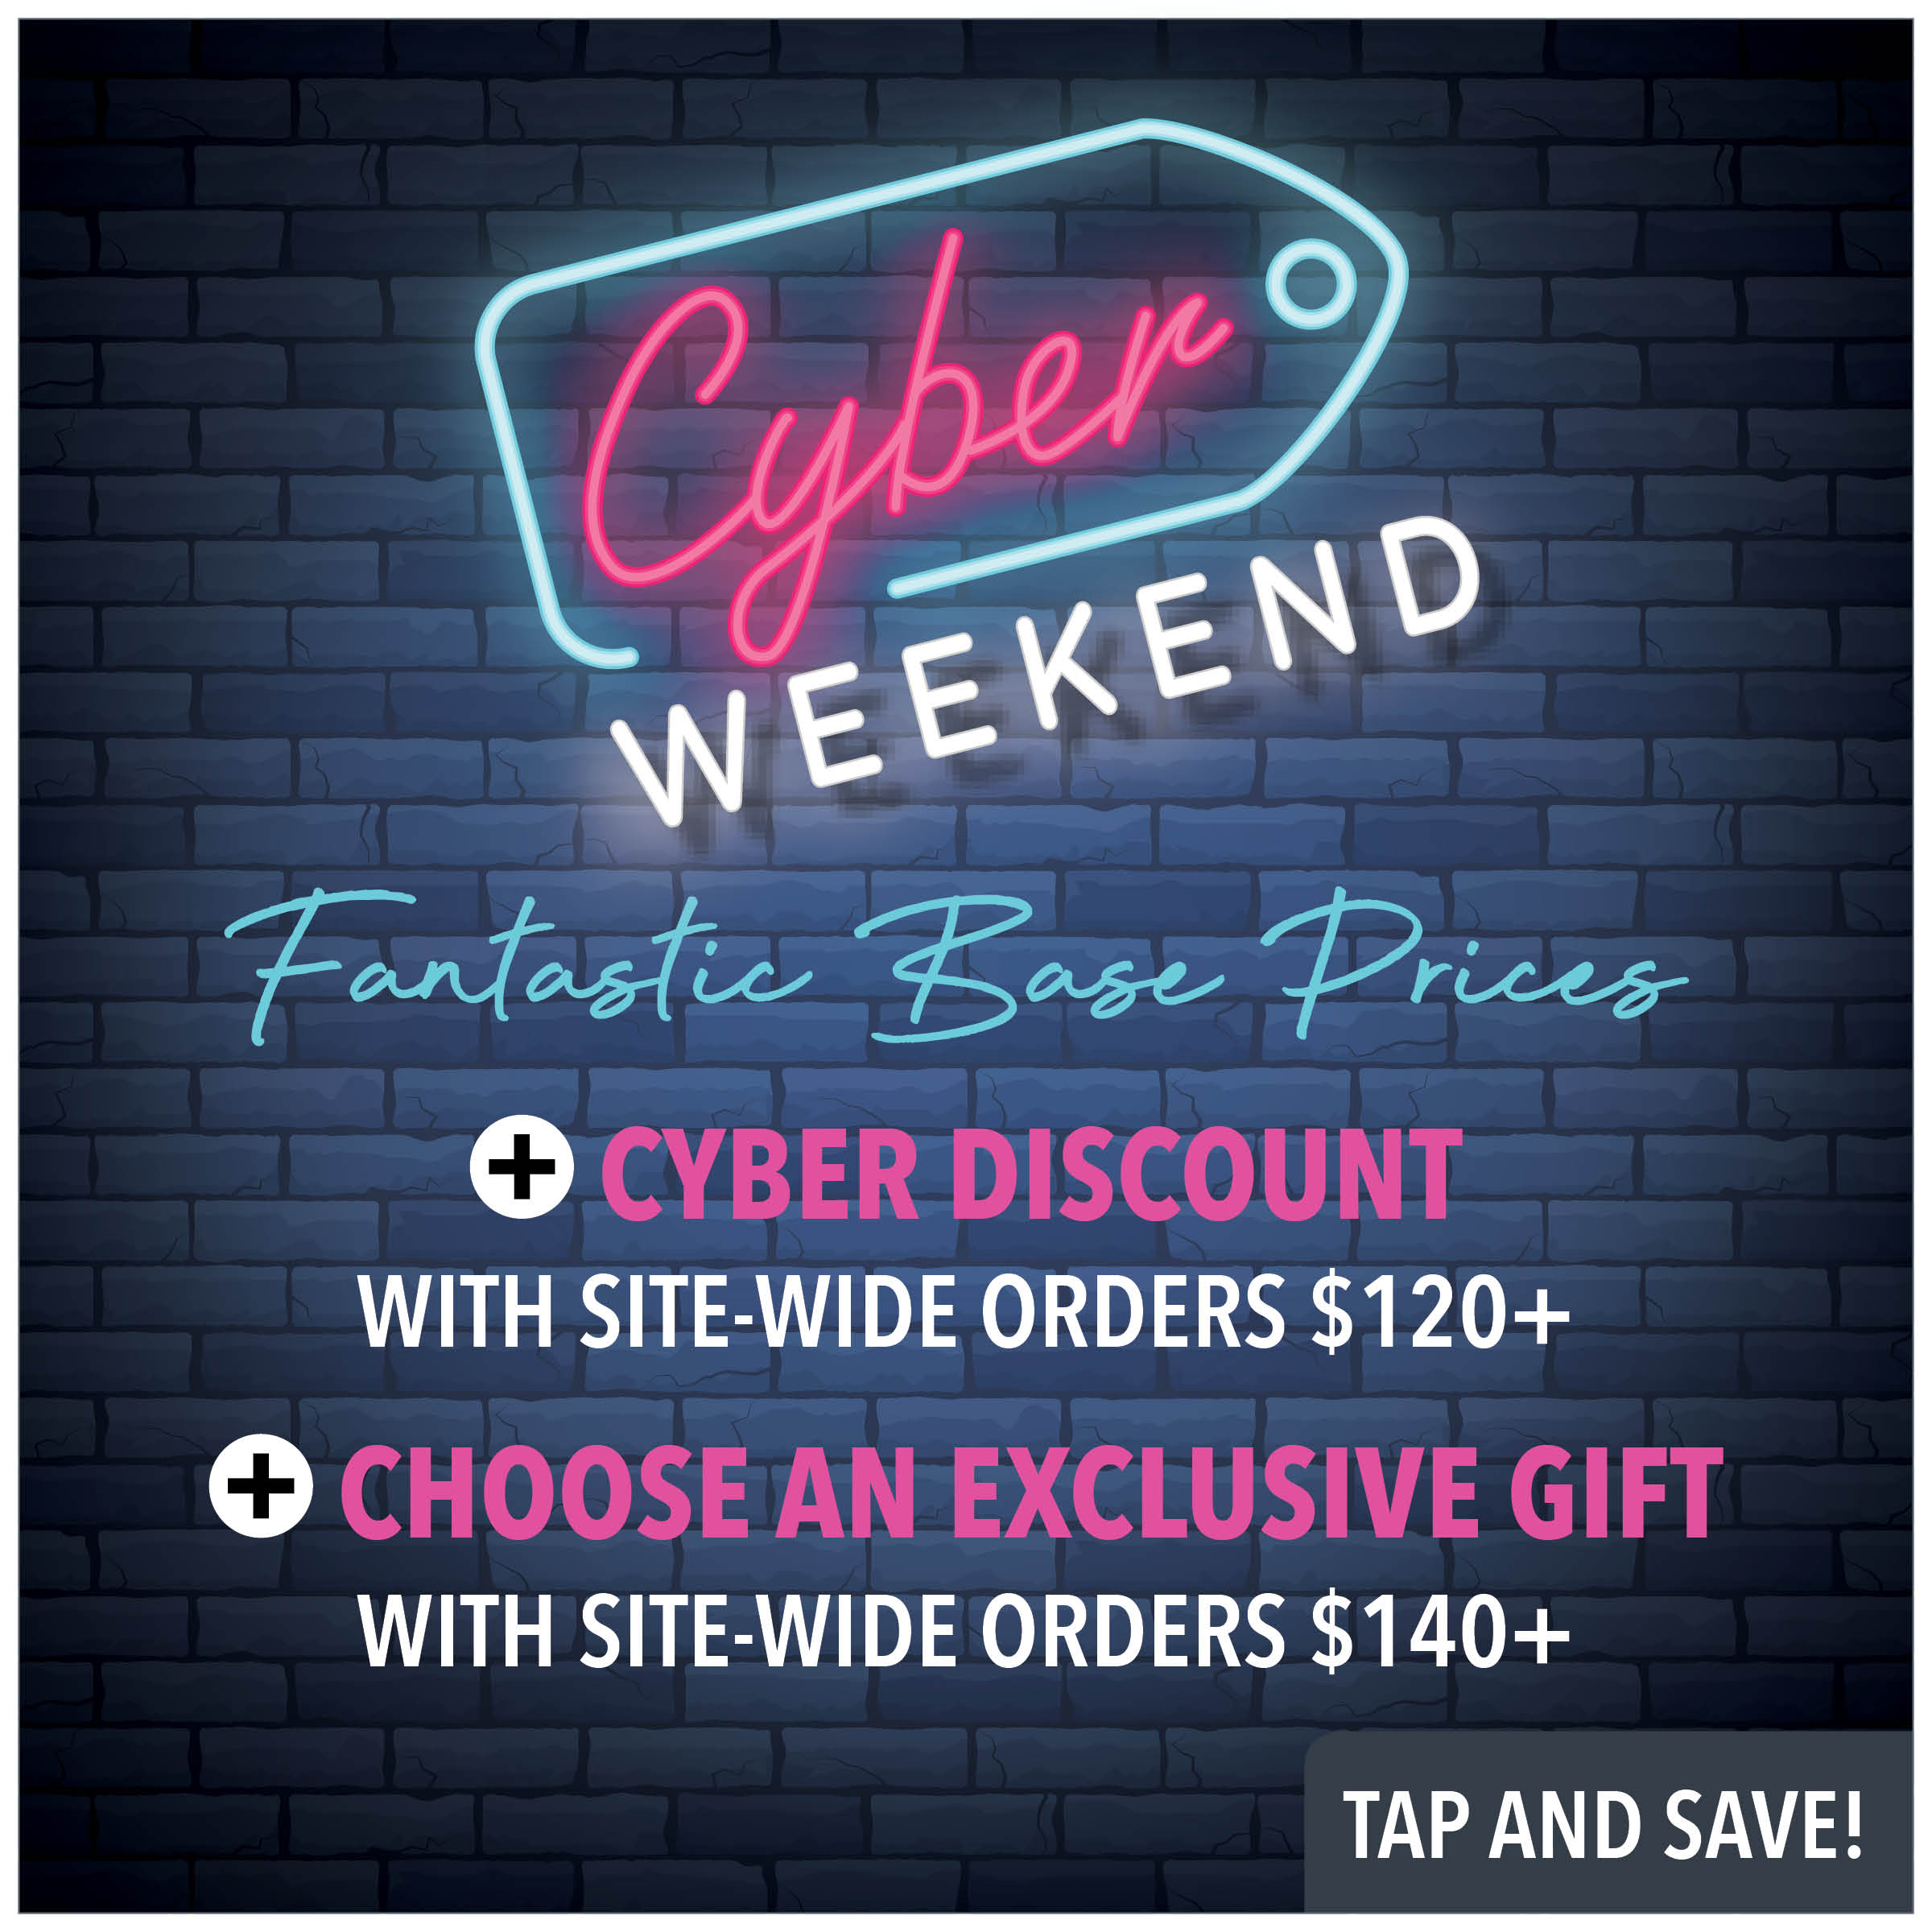 PRODERMAL CYBER WEEKEND FOR GREAT SKINCARE DEALS